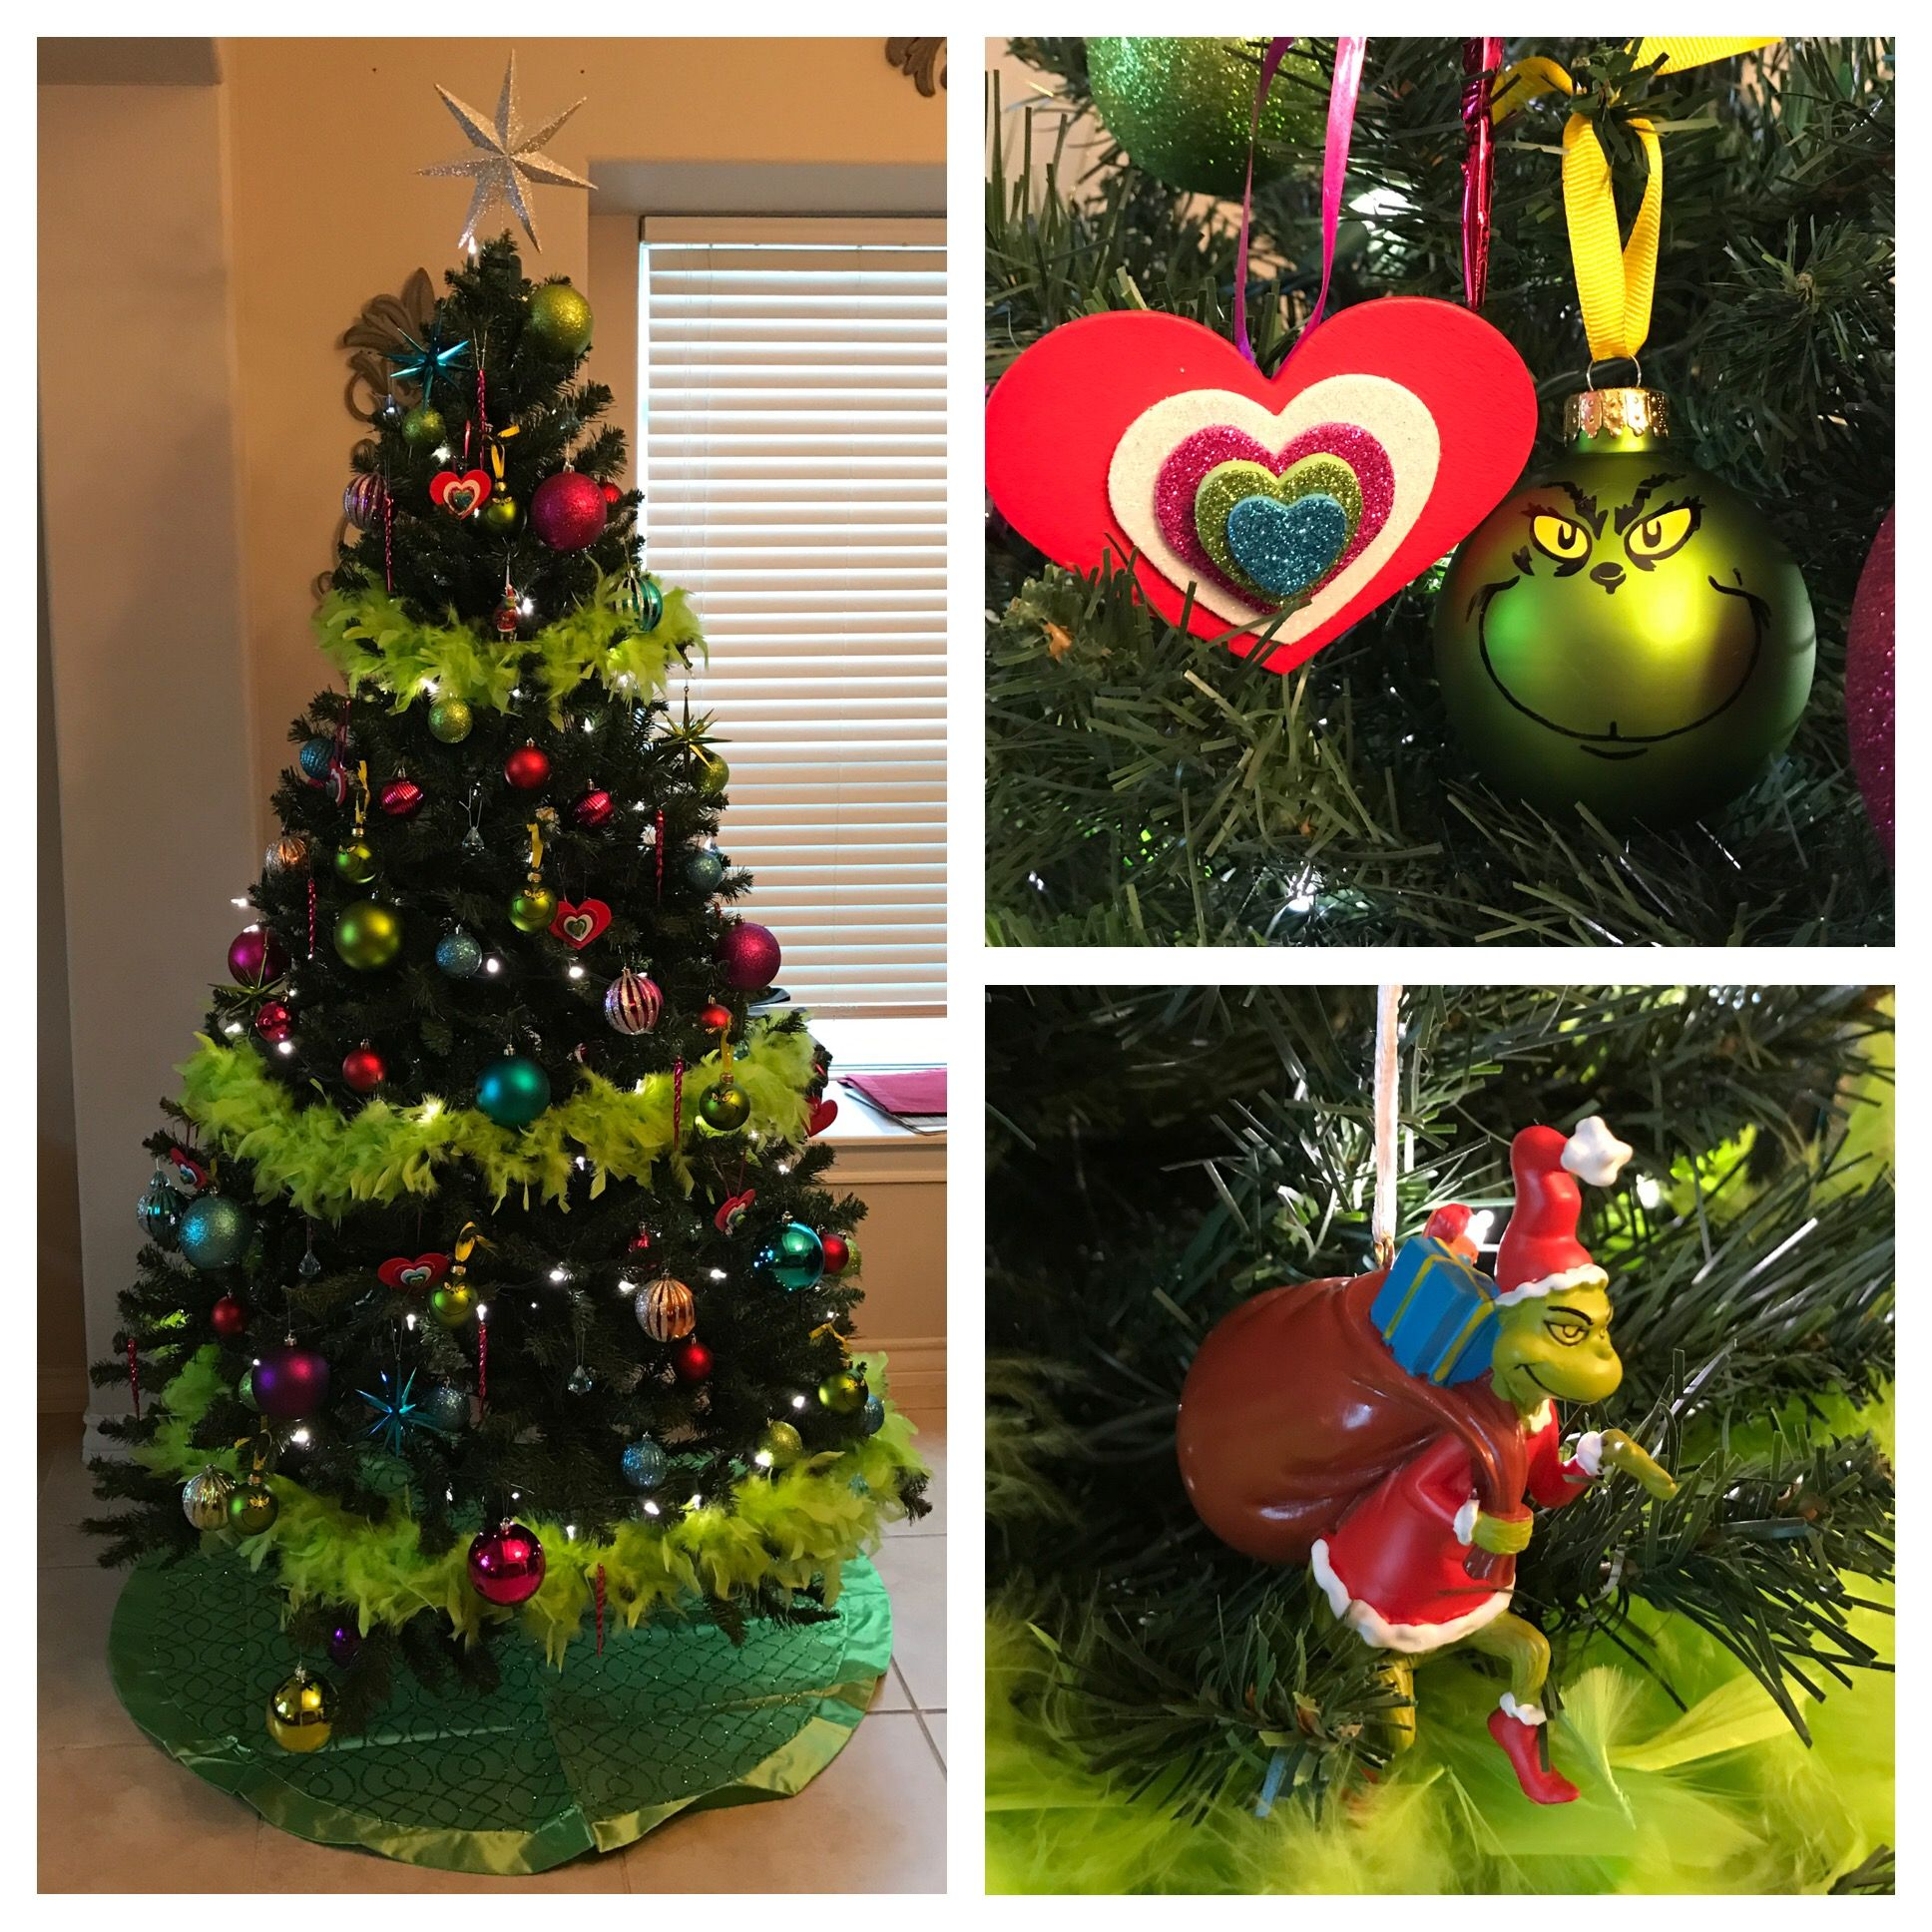 The grinch christmas tree the heart was homemade the back is wood